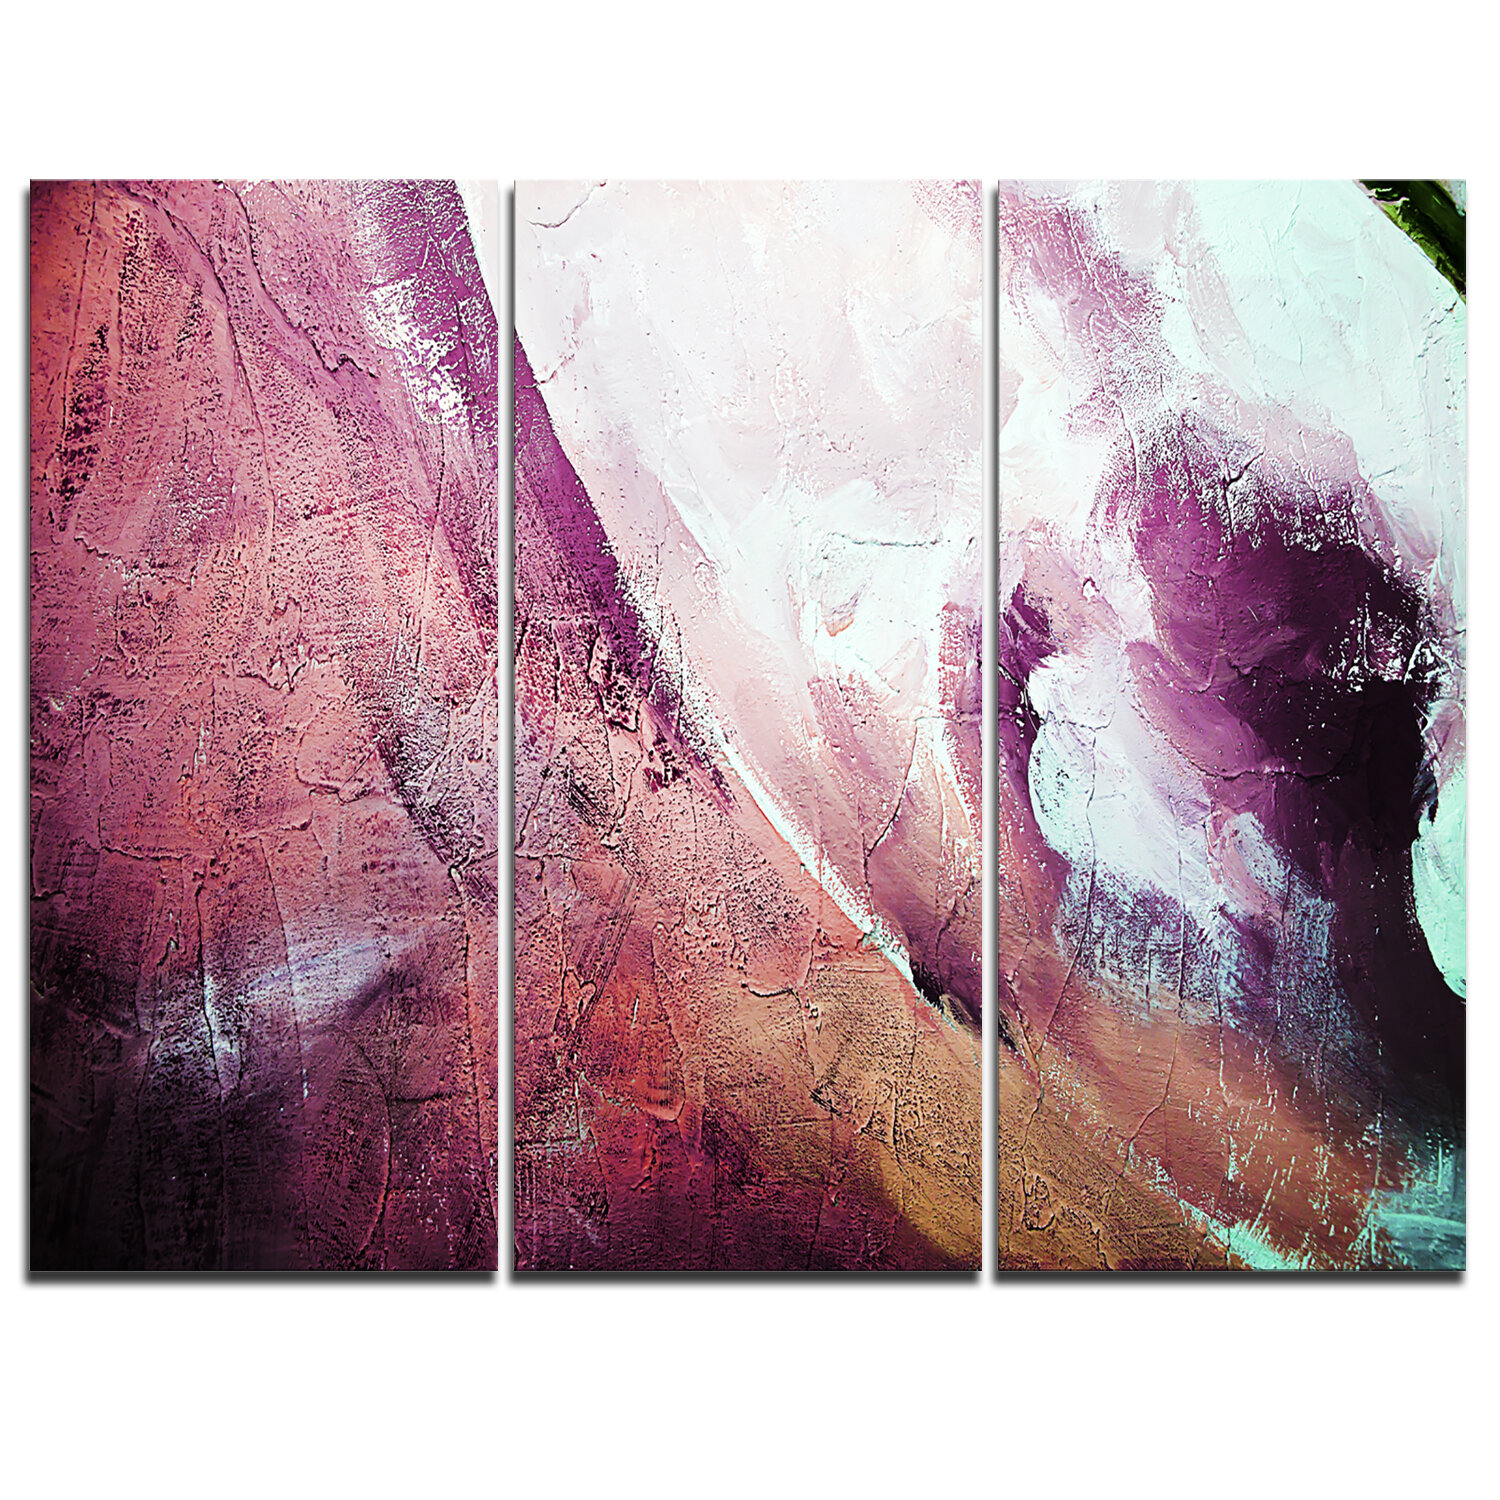 Designart White And Purple Texture 3 Piece Graphic Art On Wrapped Canvas Set Wayfair